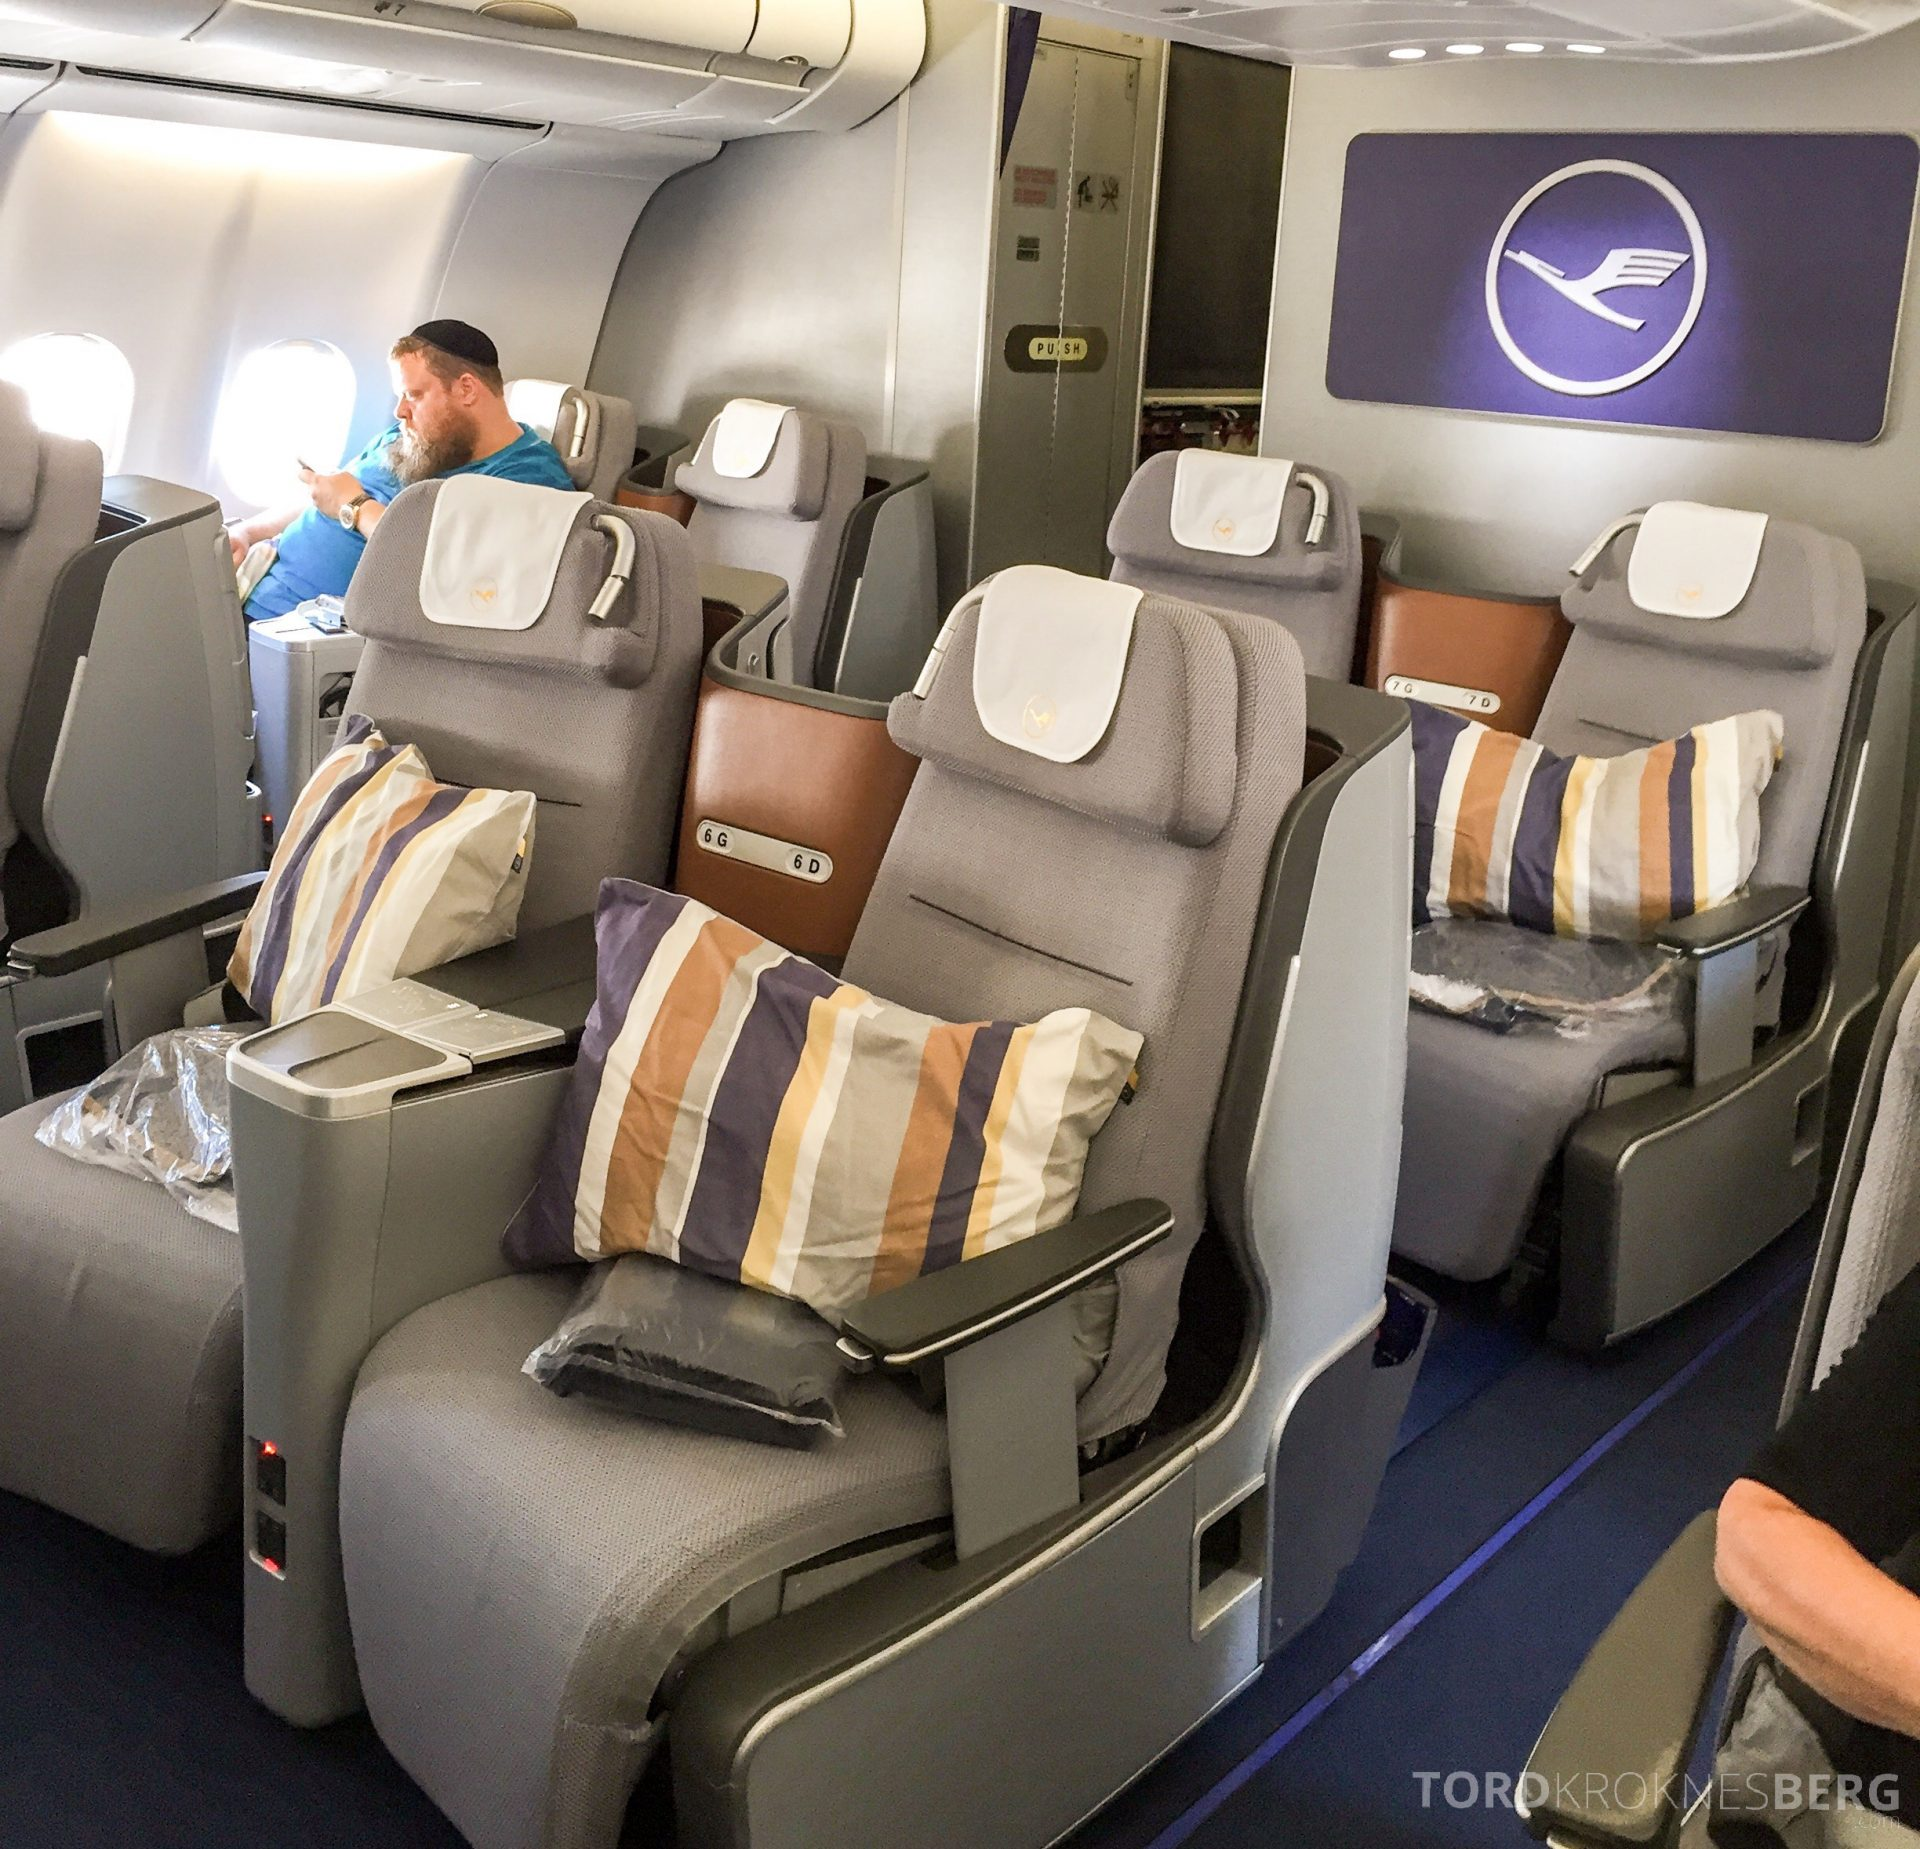 Lufthansa Business Class München til New York seter